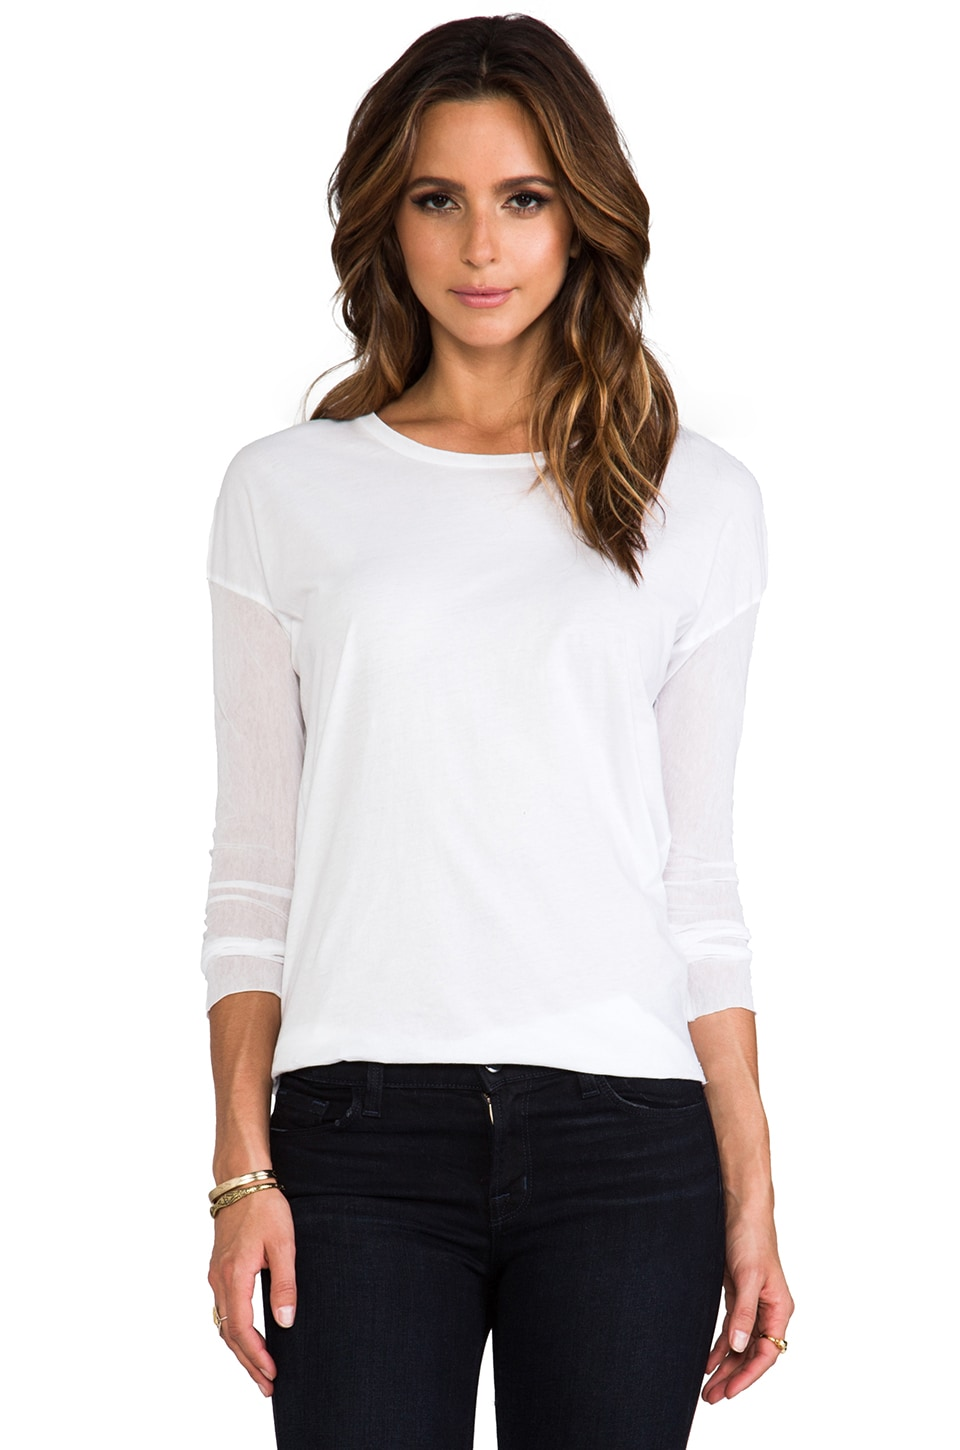 Nightcap Gauze Sleeve Tee in White